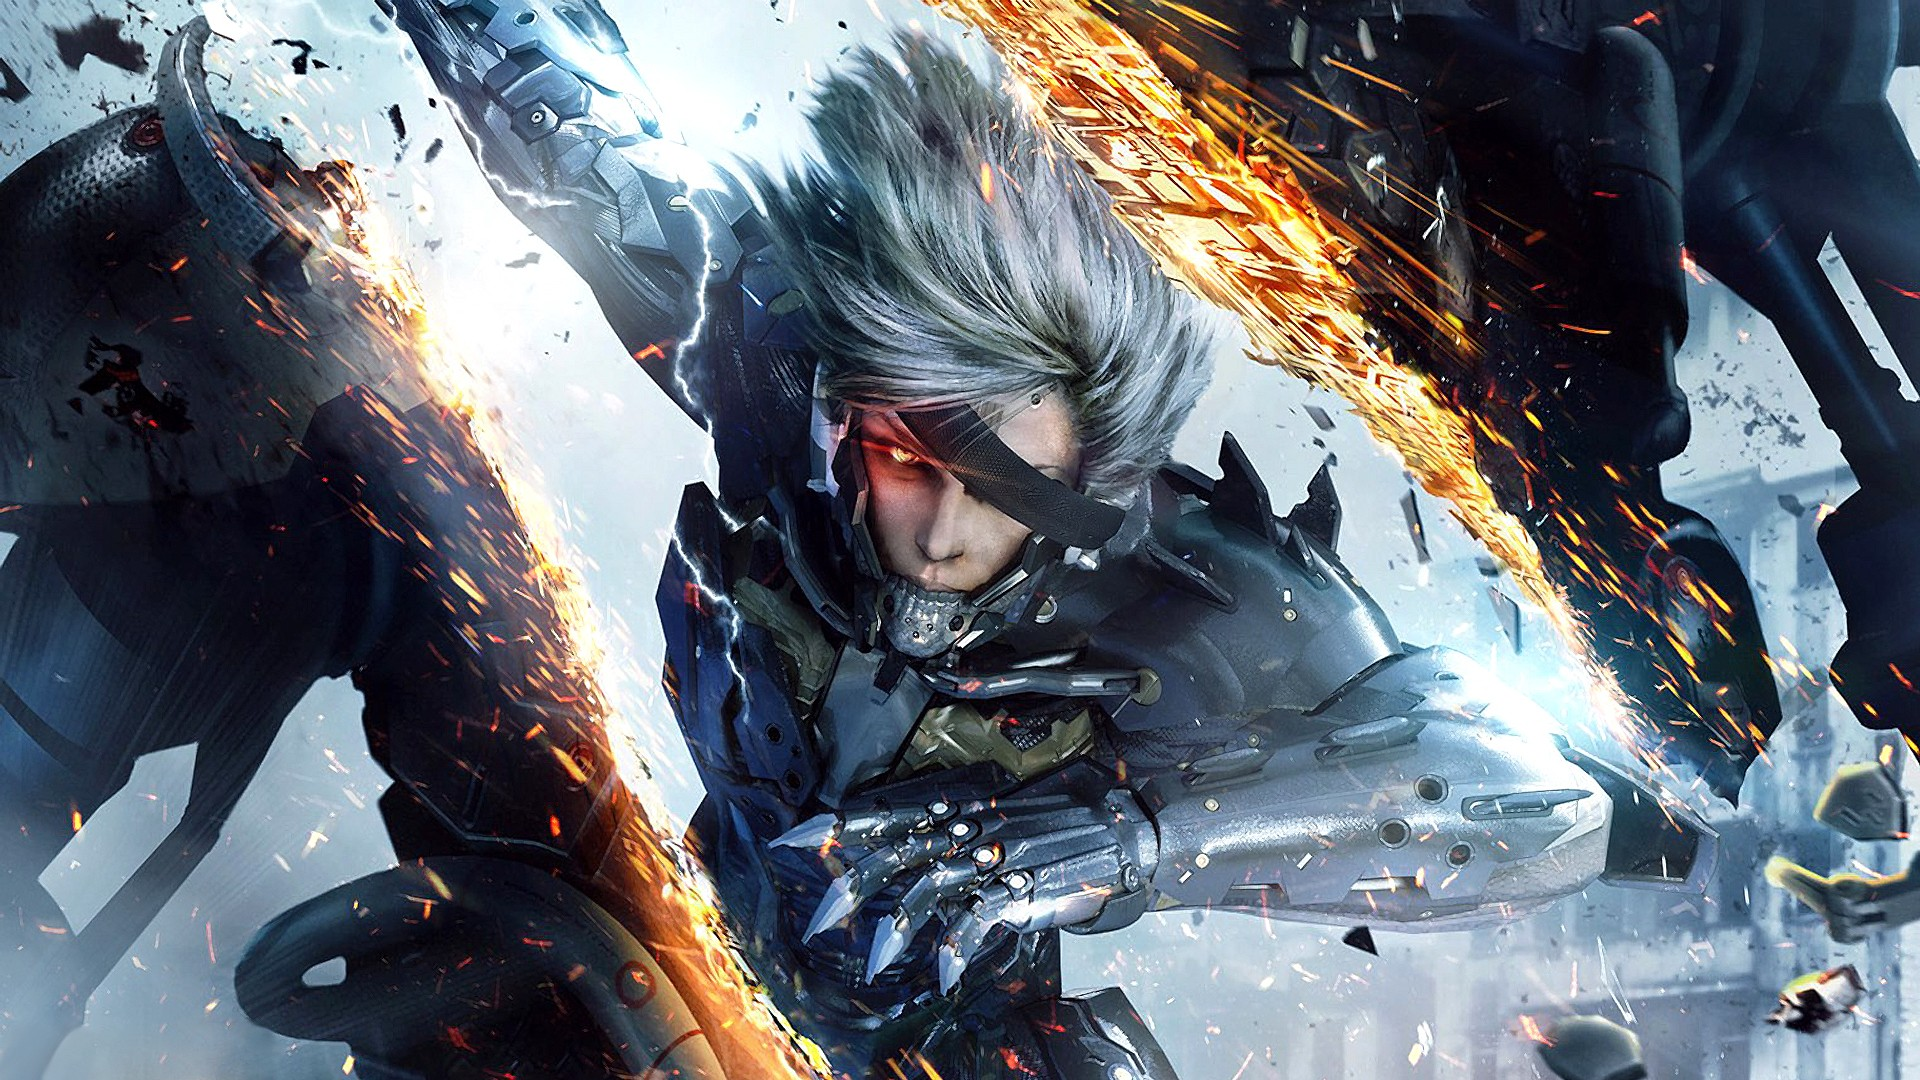 Slice! Chop! A Talking Mechanical Dog!? Metal Gear Rising: Revengeance, Baby!